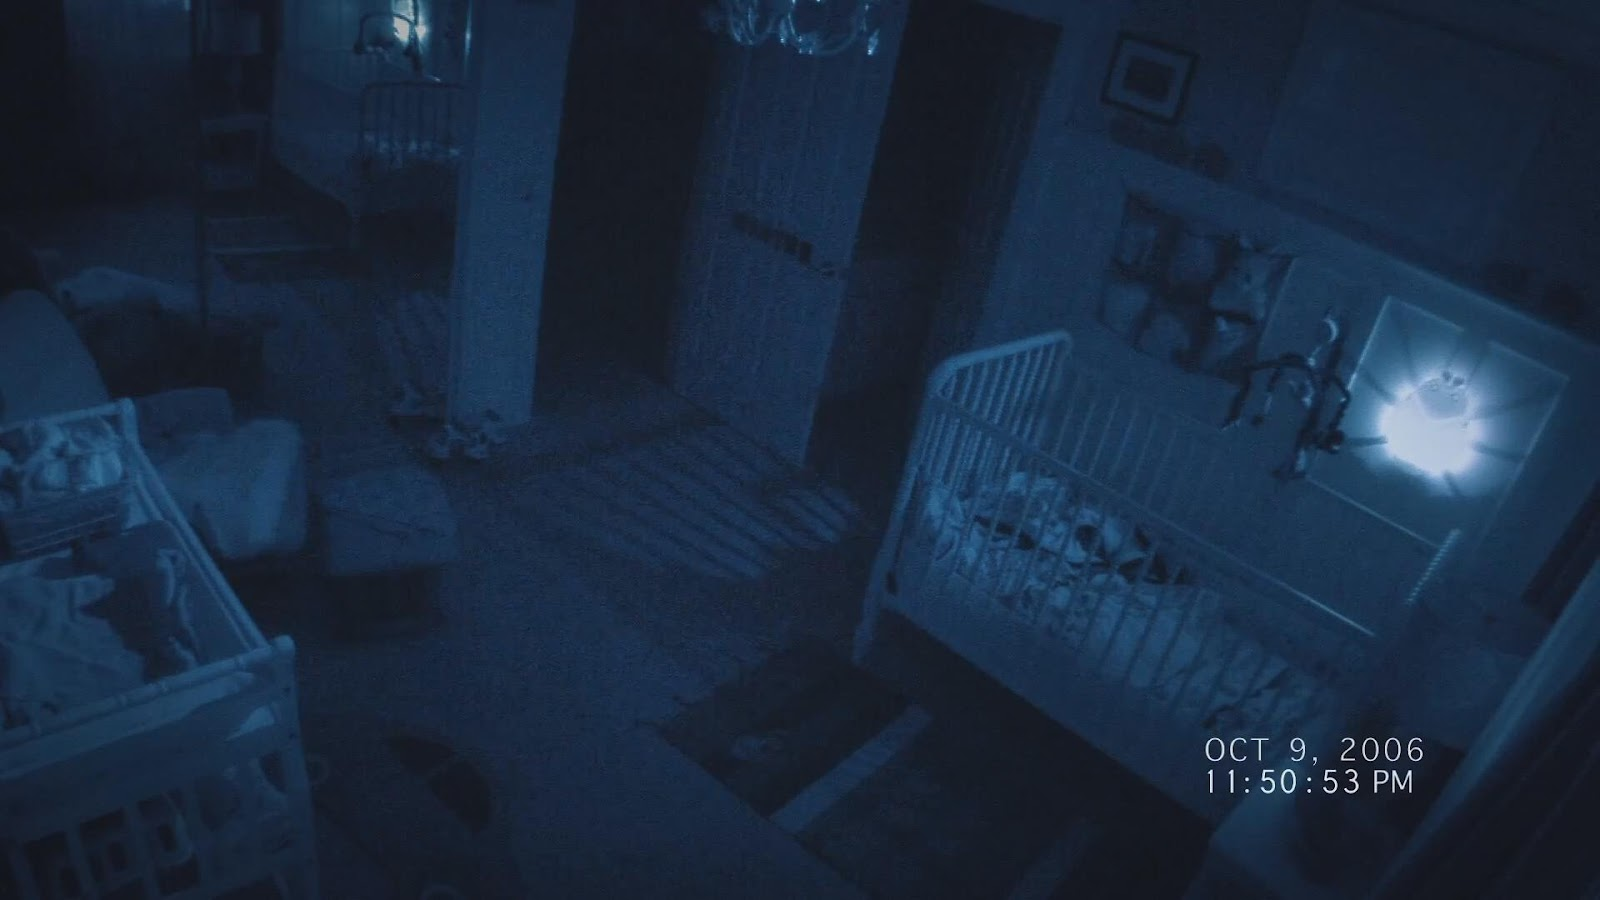 Paranormal+Activity+4+hd+wallpapers+%286%29 Paranormal Activity 4 Fragmanı İzle